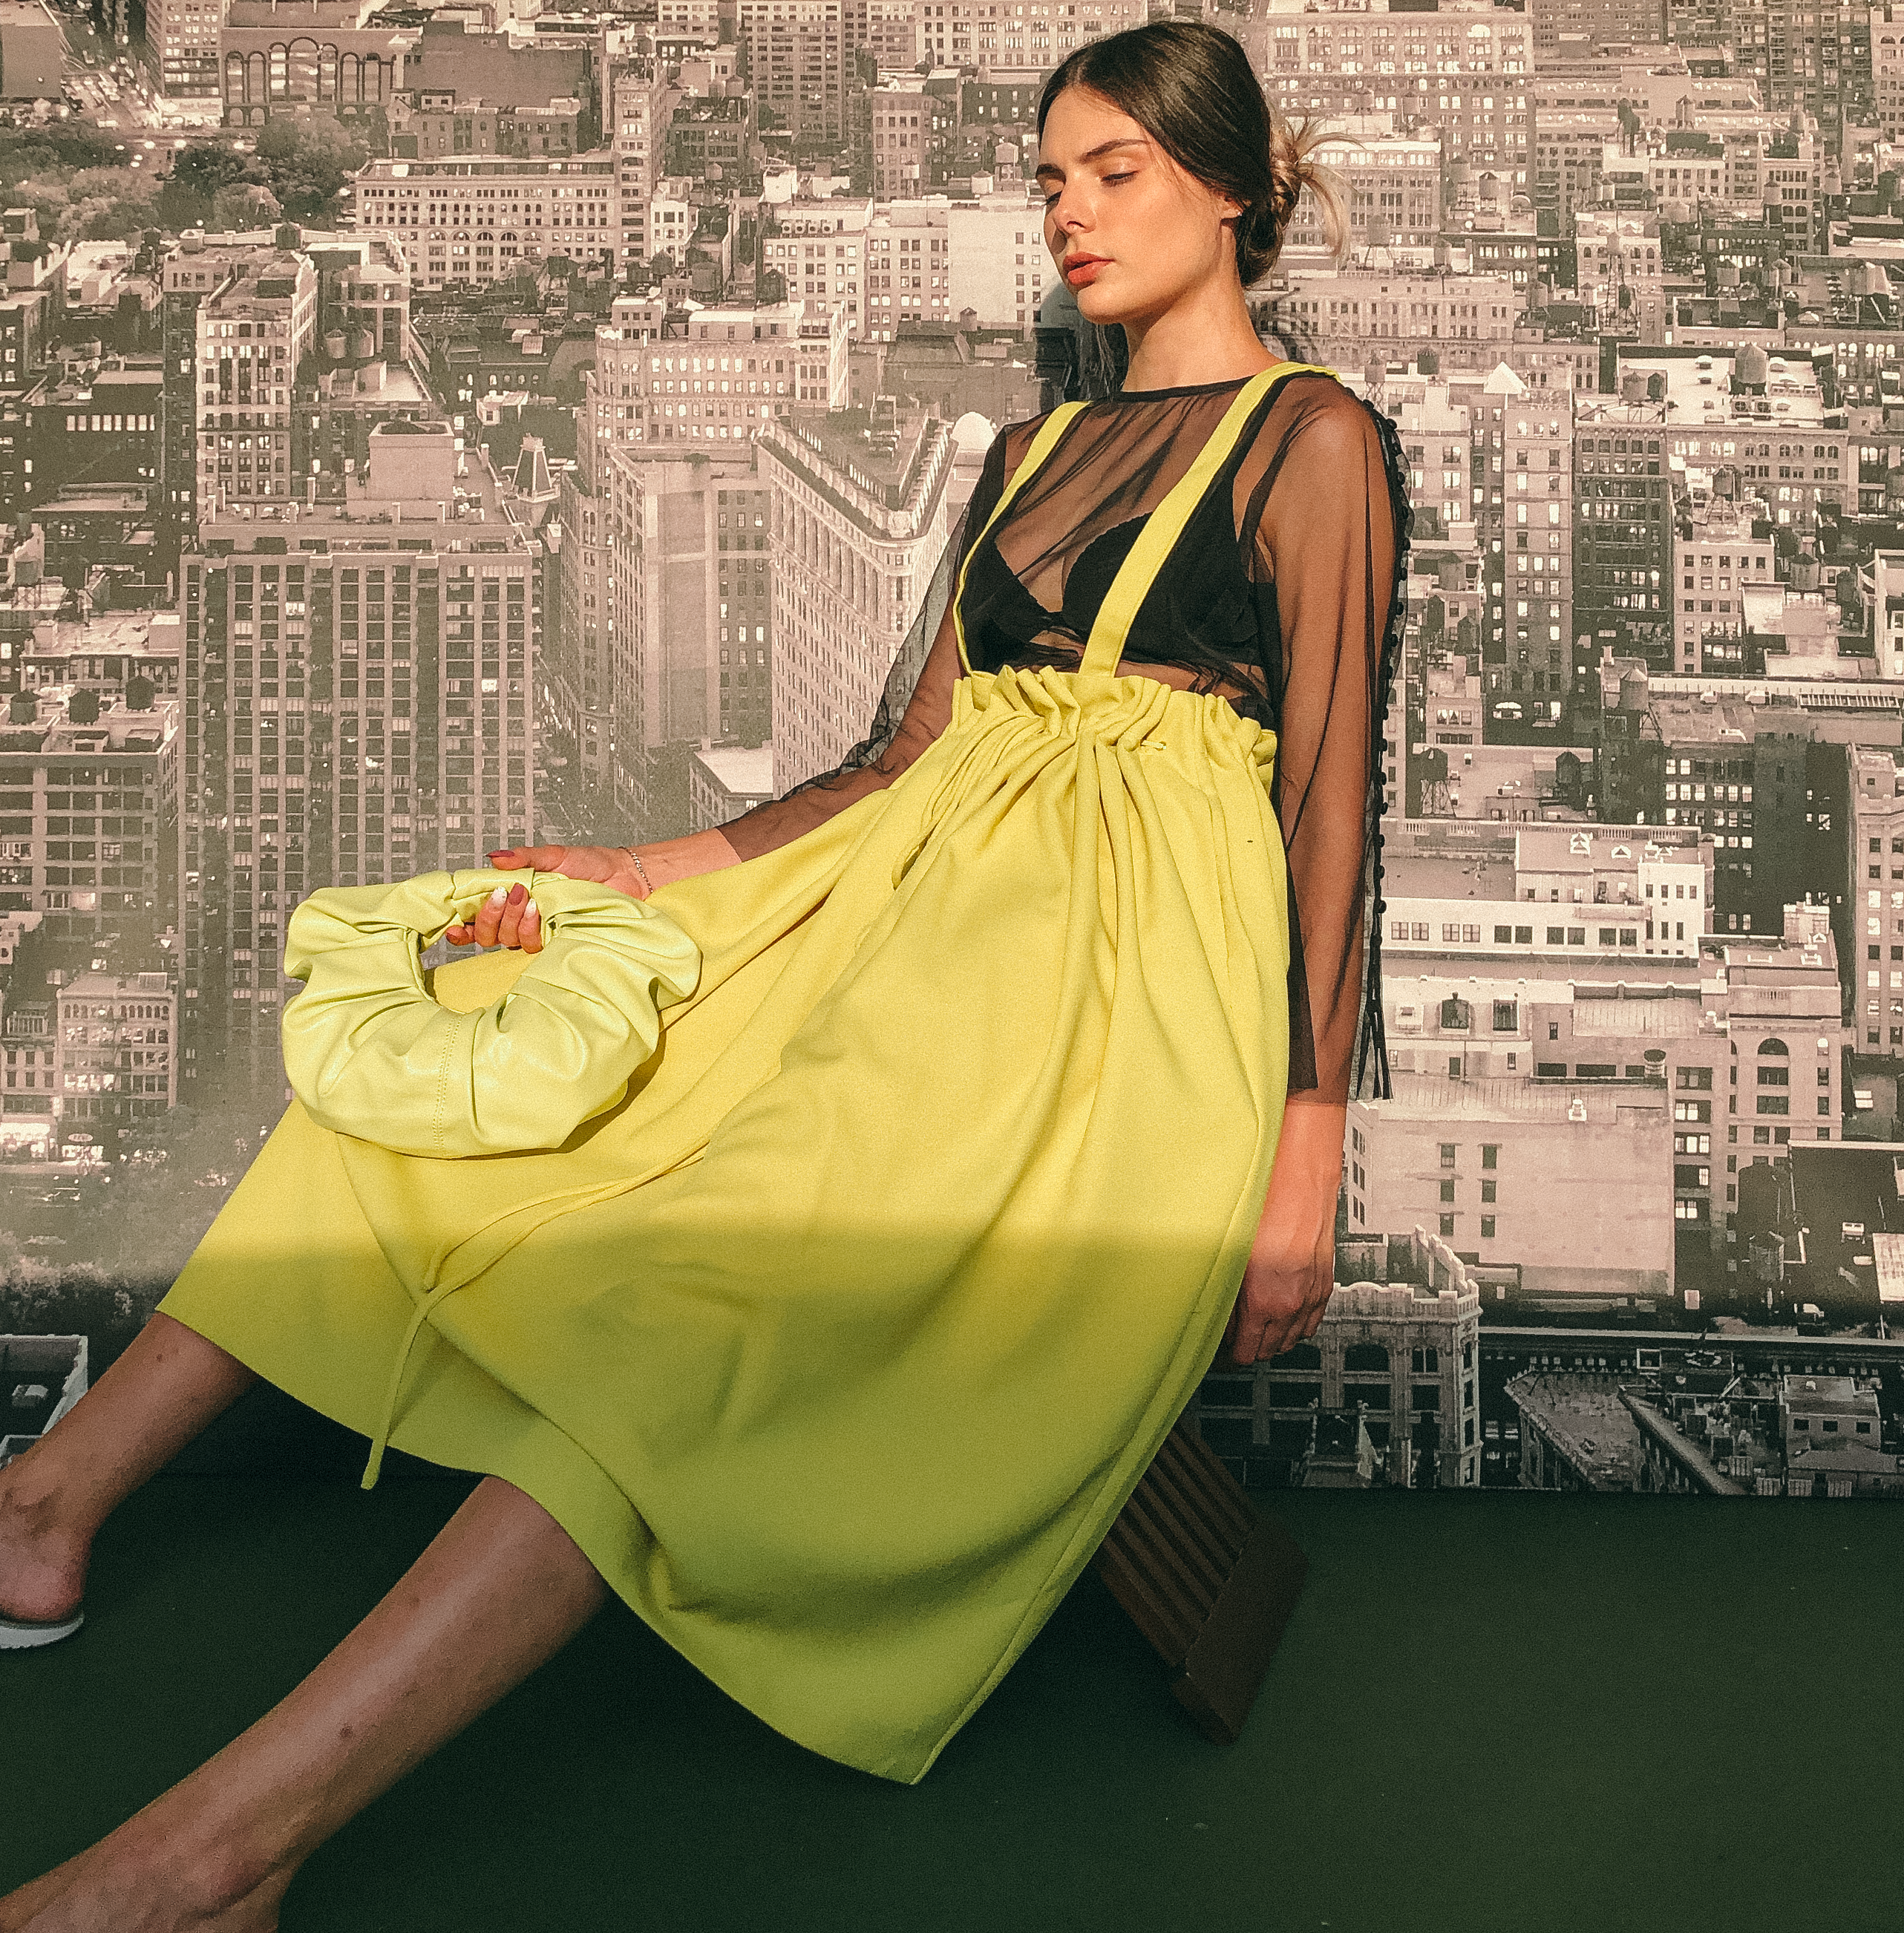 Drawstring Pinafore in Fluoro Yellow by Ultramarine Studio